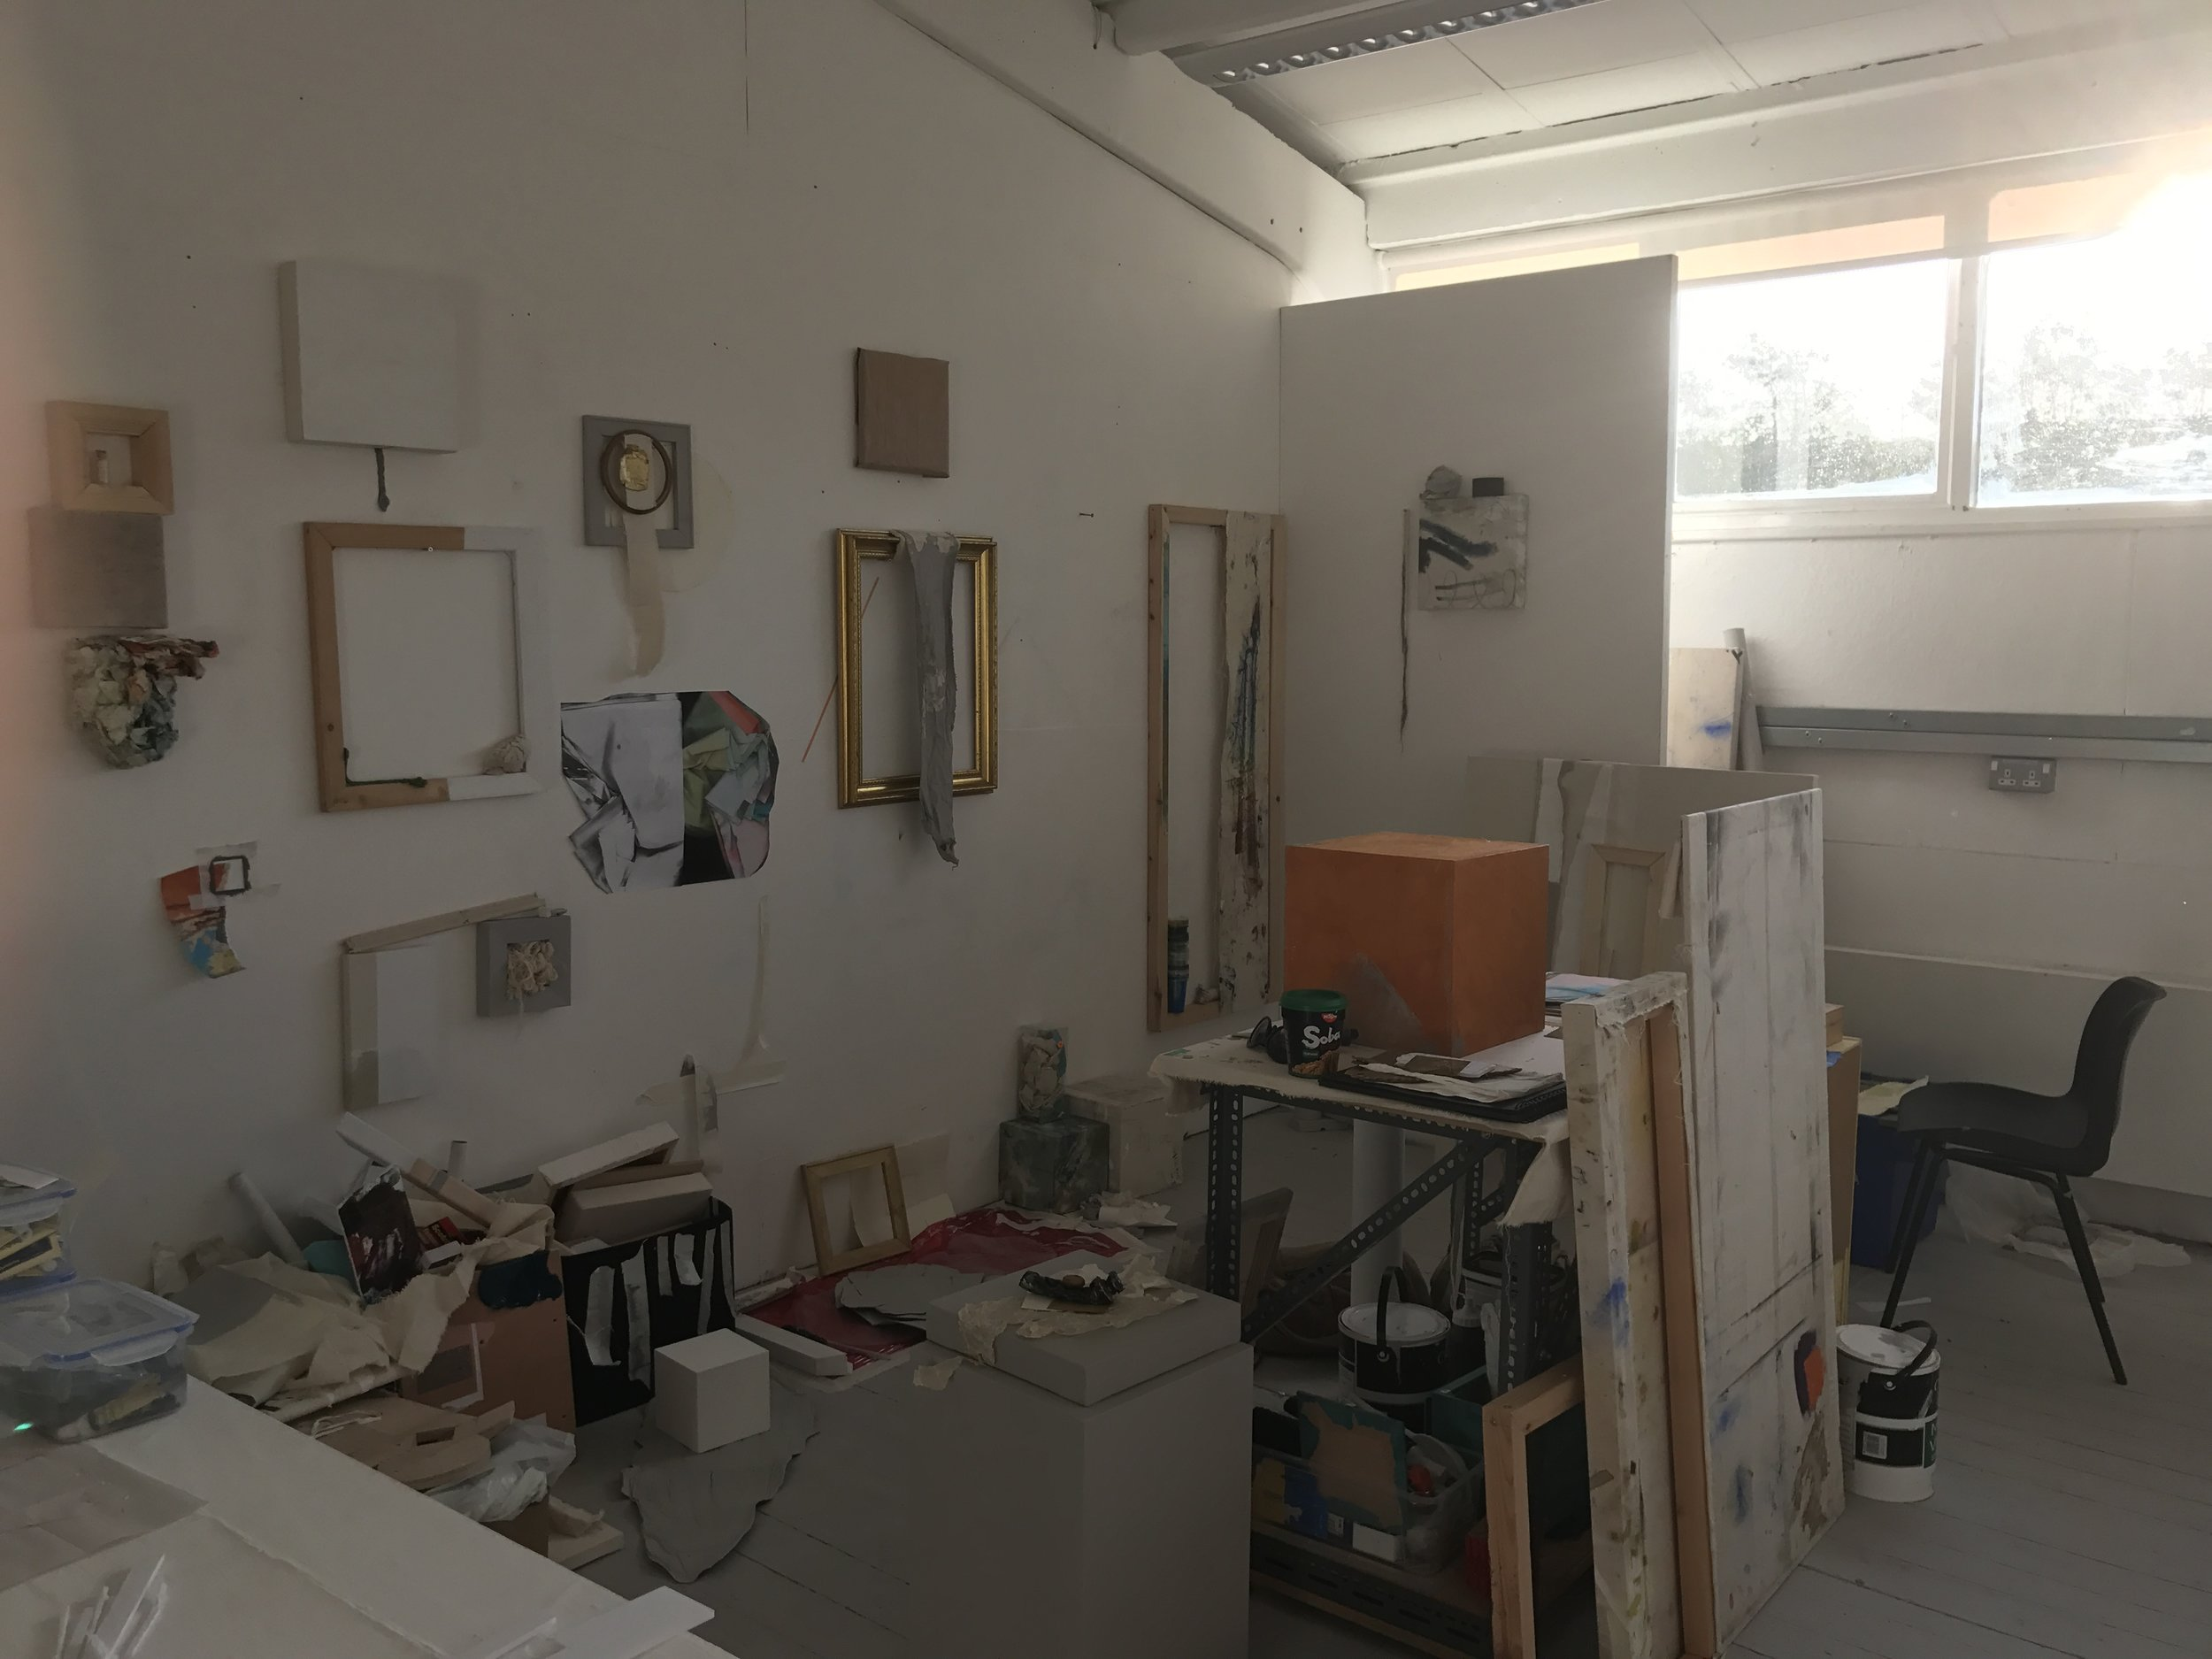 Ally McGinn (2017) [Studio documentation].  Studio View - Wednesday 25th, 9am. The process continues but I'm stuck to the wall.